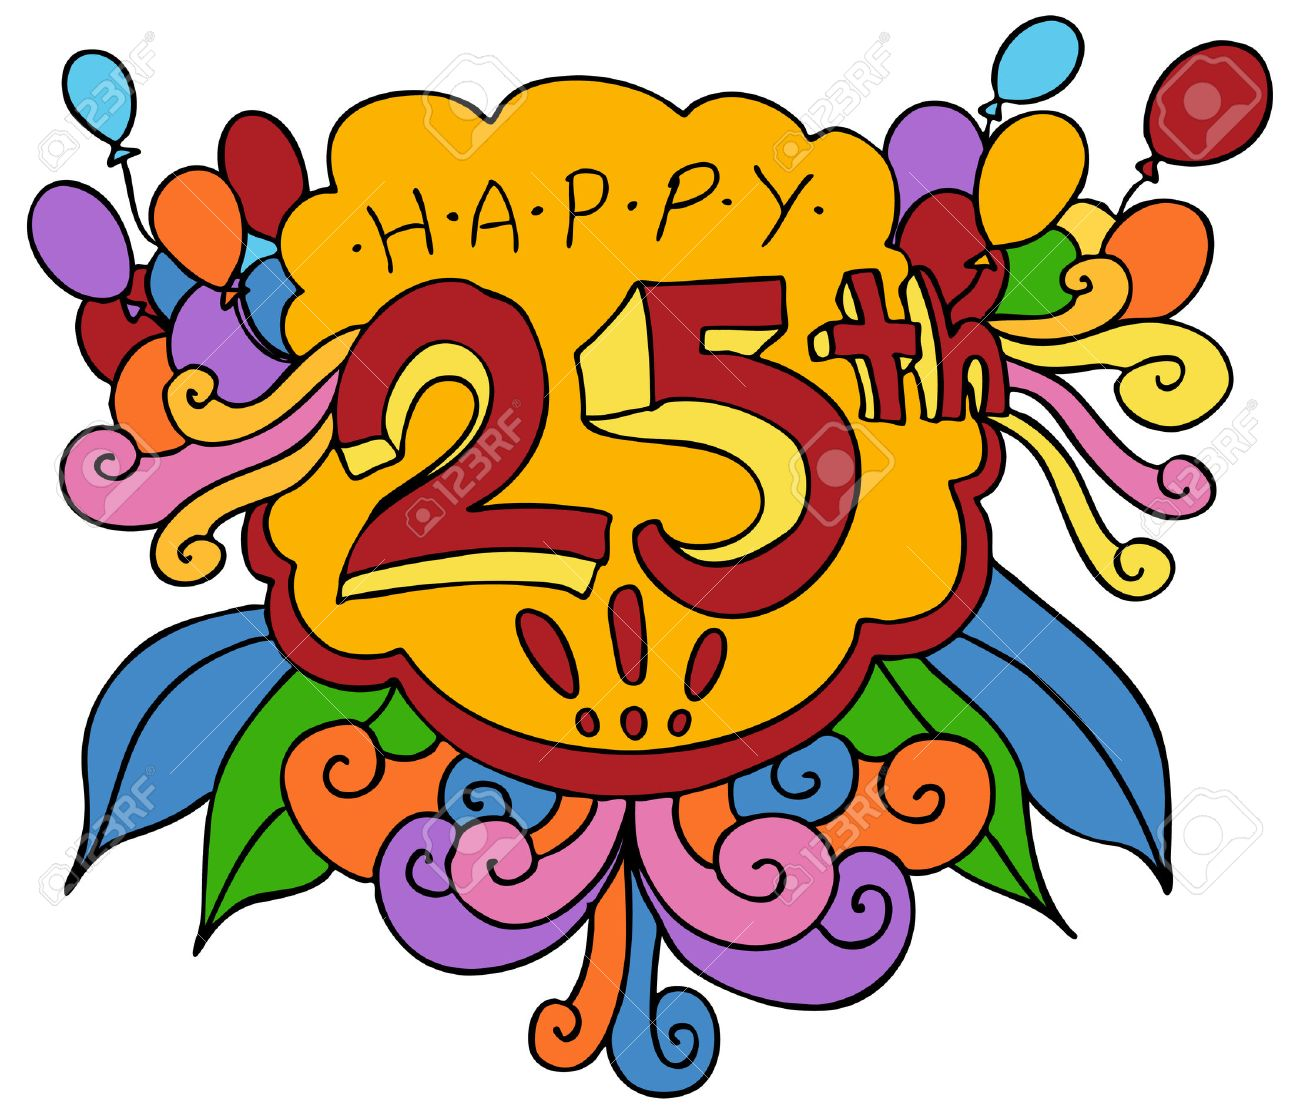 0 25th Stock Vector Illustration And Royalty Free 25th Clipart throughout free clip art 25th birthday for your reference